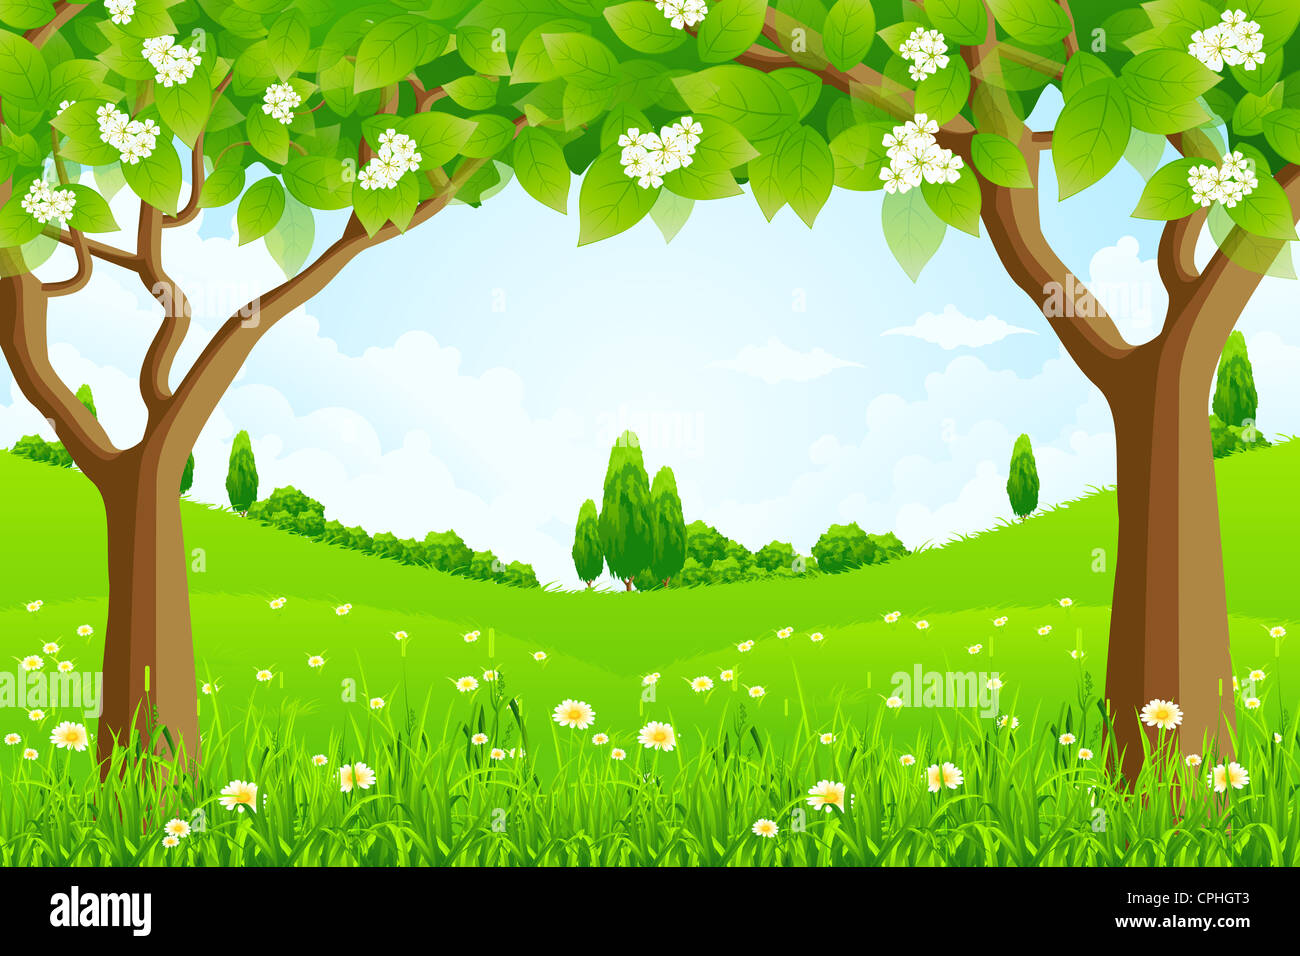 Green Background with Trees Flowers and Hills Stock Photo Royalty